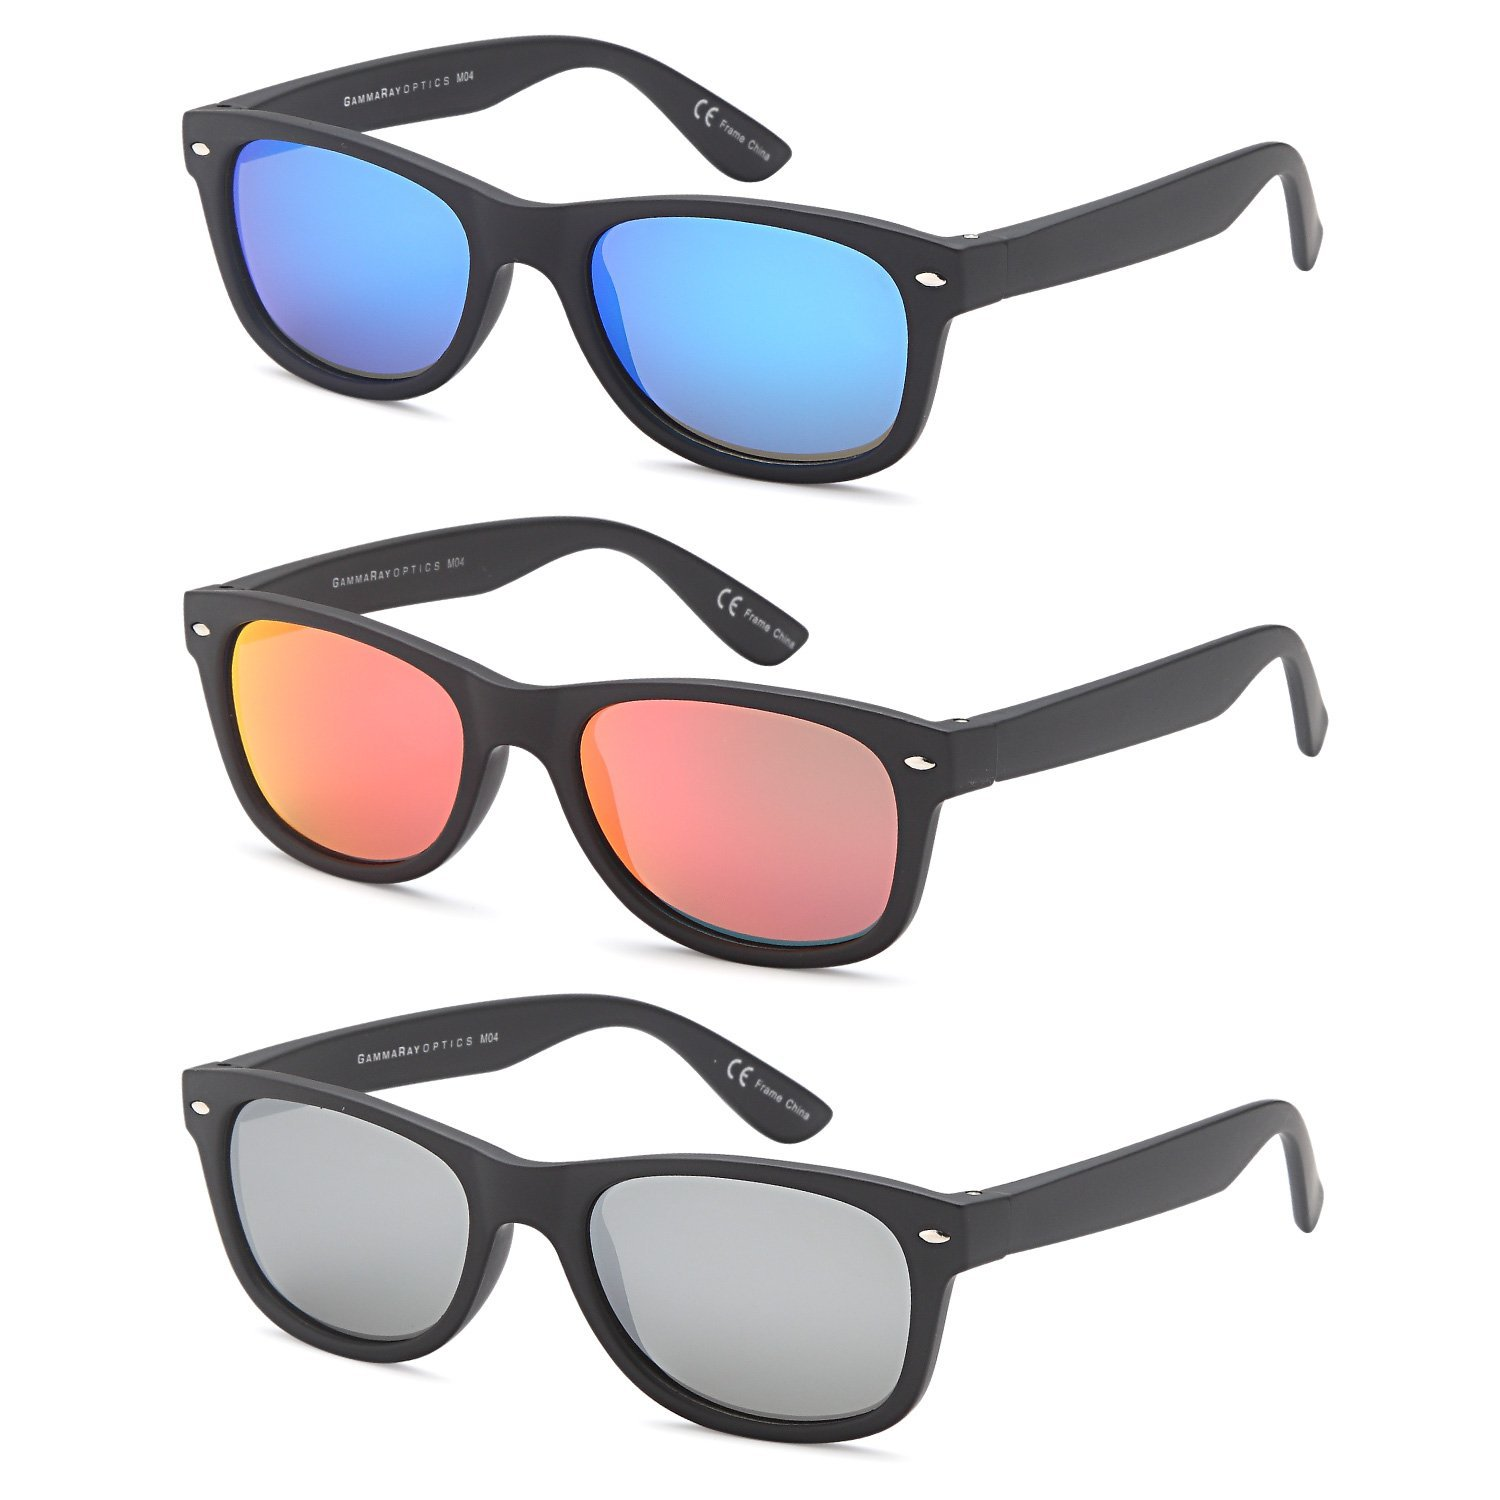 897cfb069d GAMMA RAY Polarized UV400 Classic Style Sunglasses with Mirror Lens and  Multi Pack Options